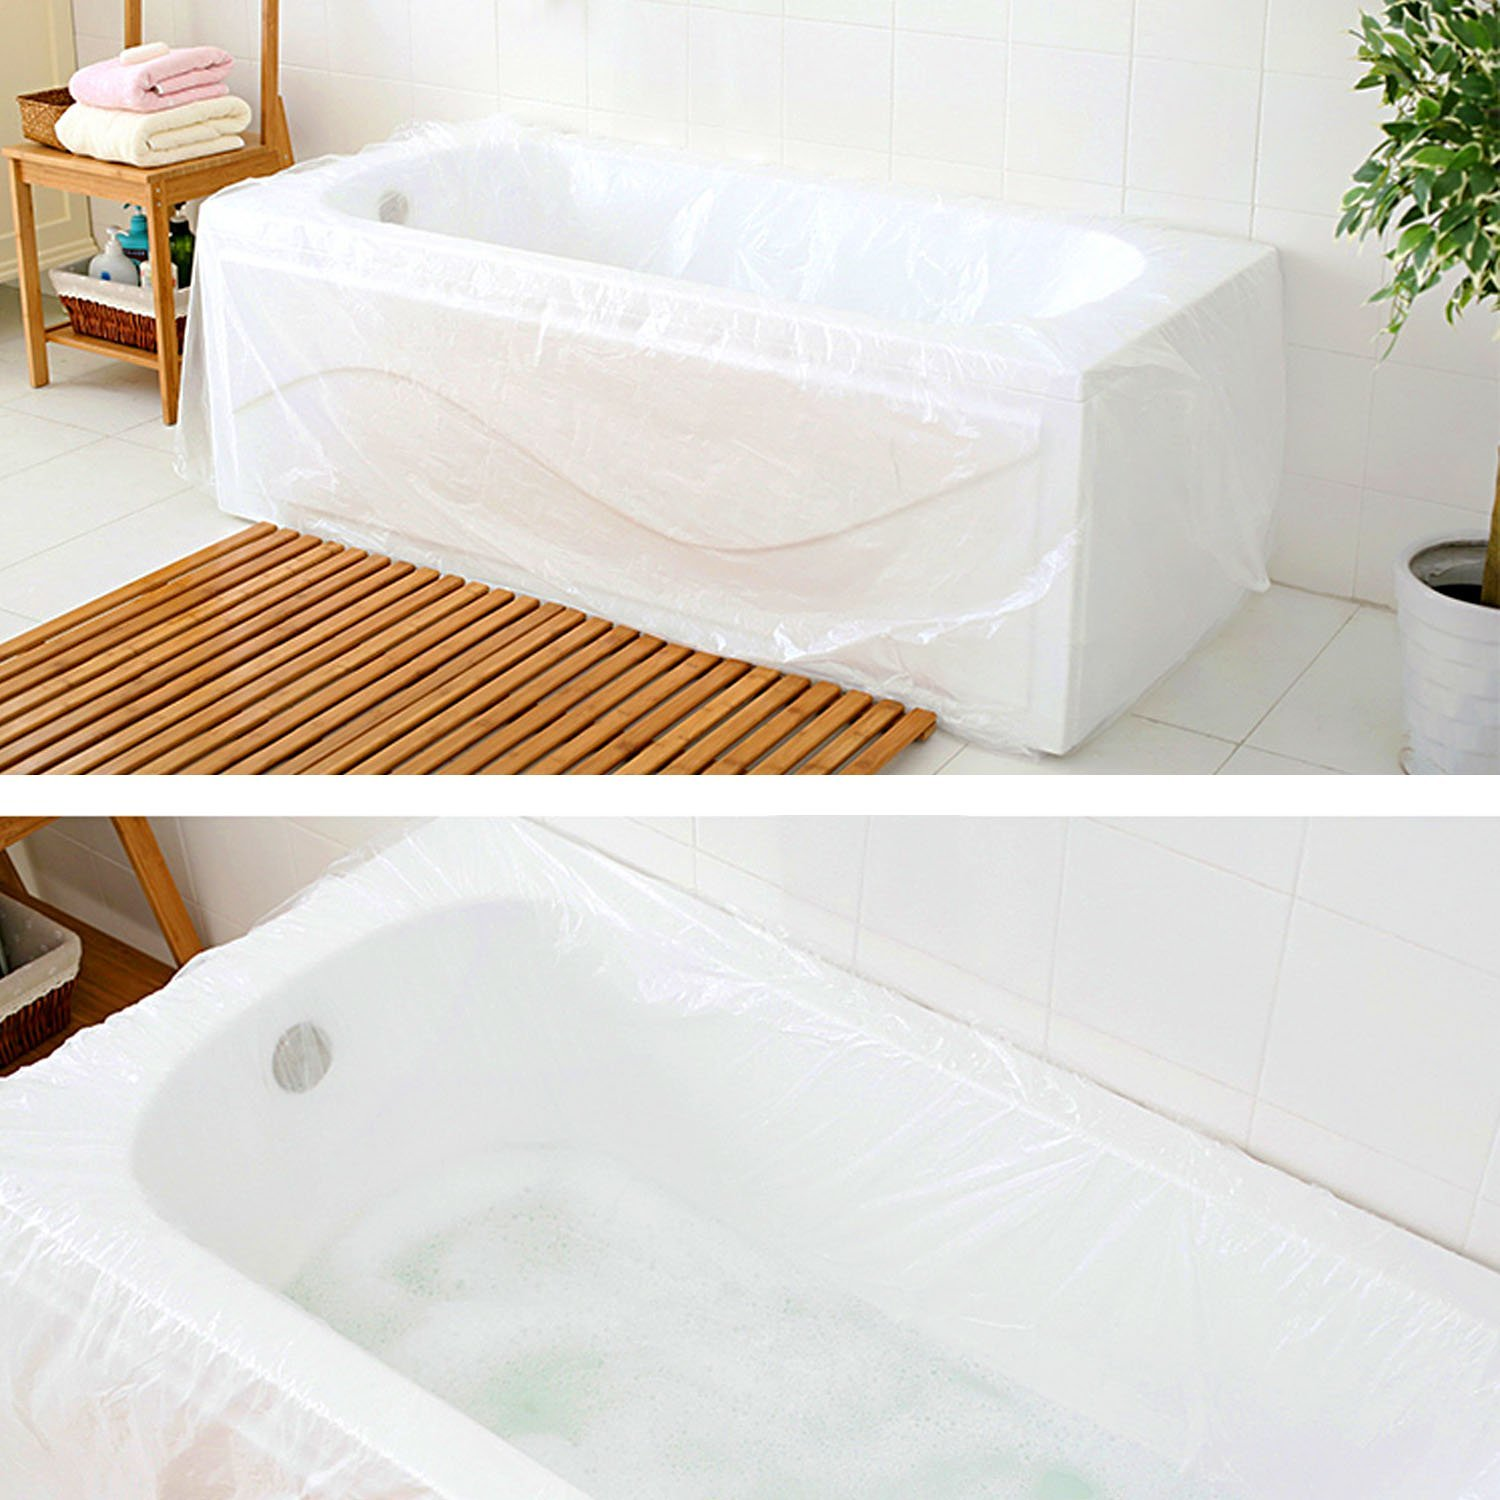 of design bathtub in types furniture fresh view modern interior bathtubs home gallery ideas different at nice cool